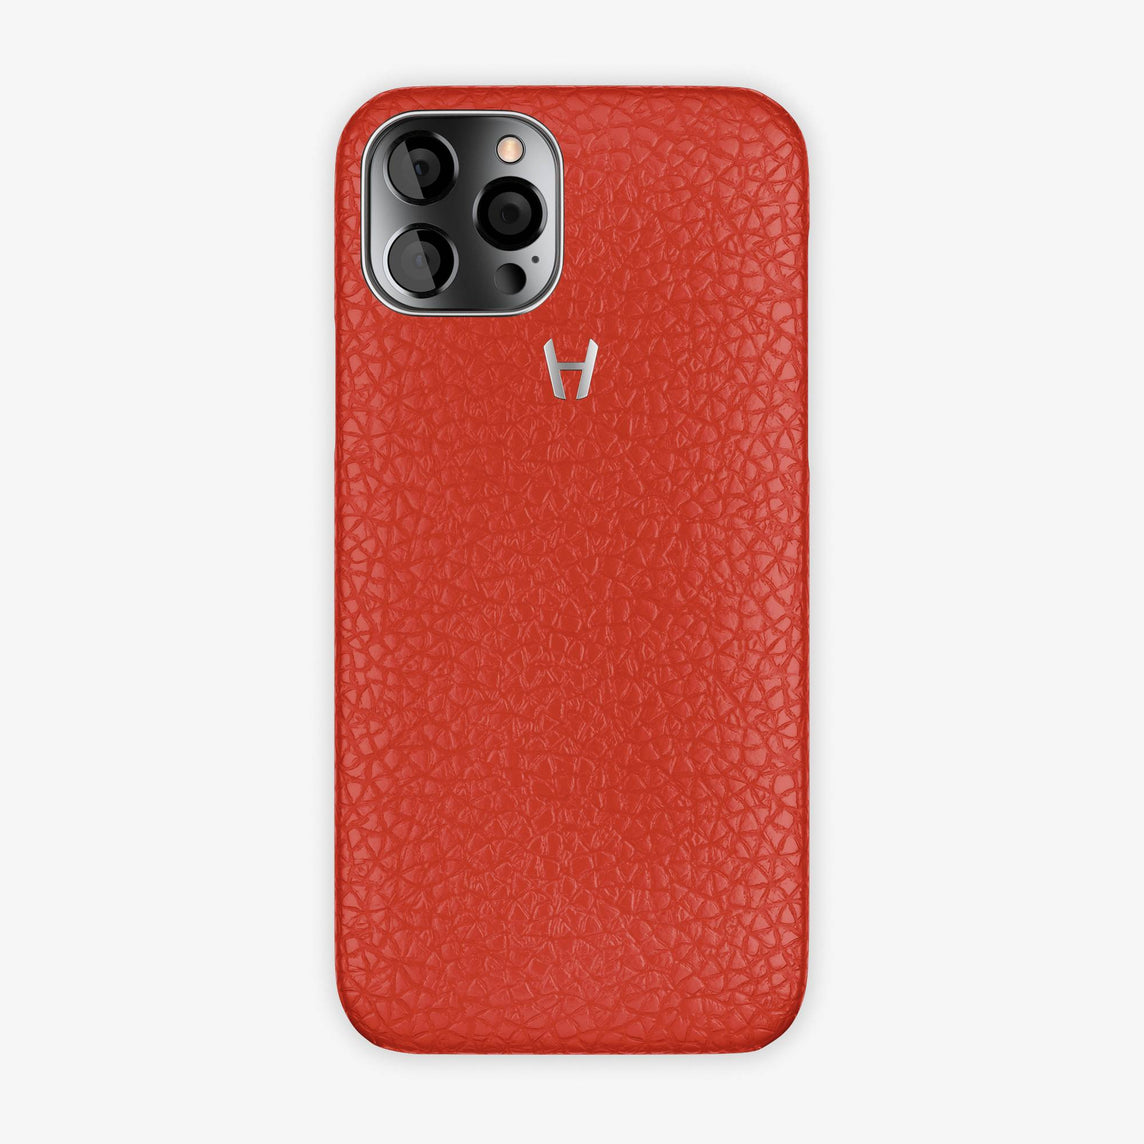 Calfskin Case Apple iPhone 12 Pro | Red - Stainless Steel